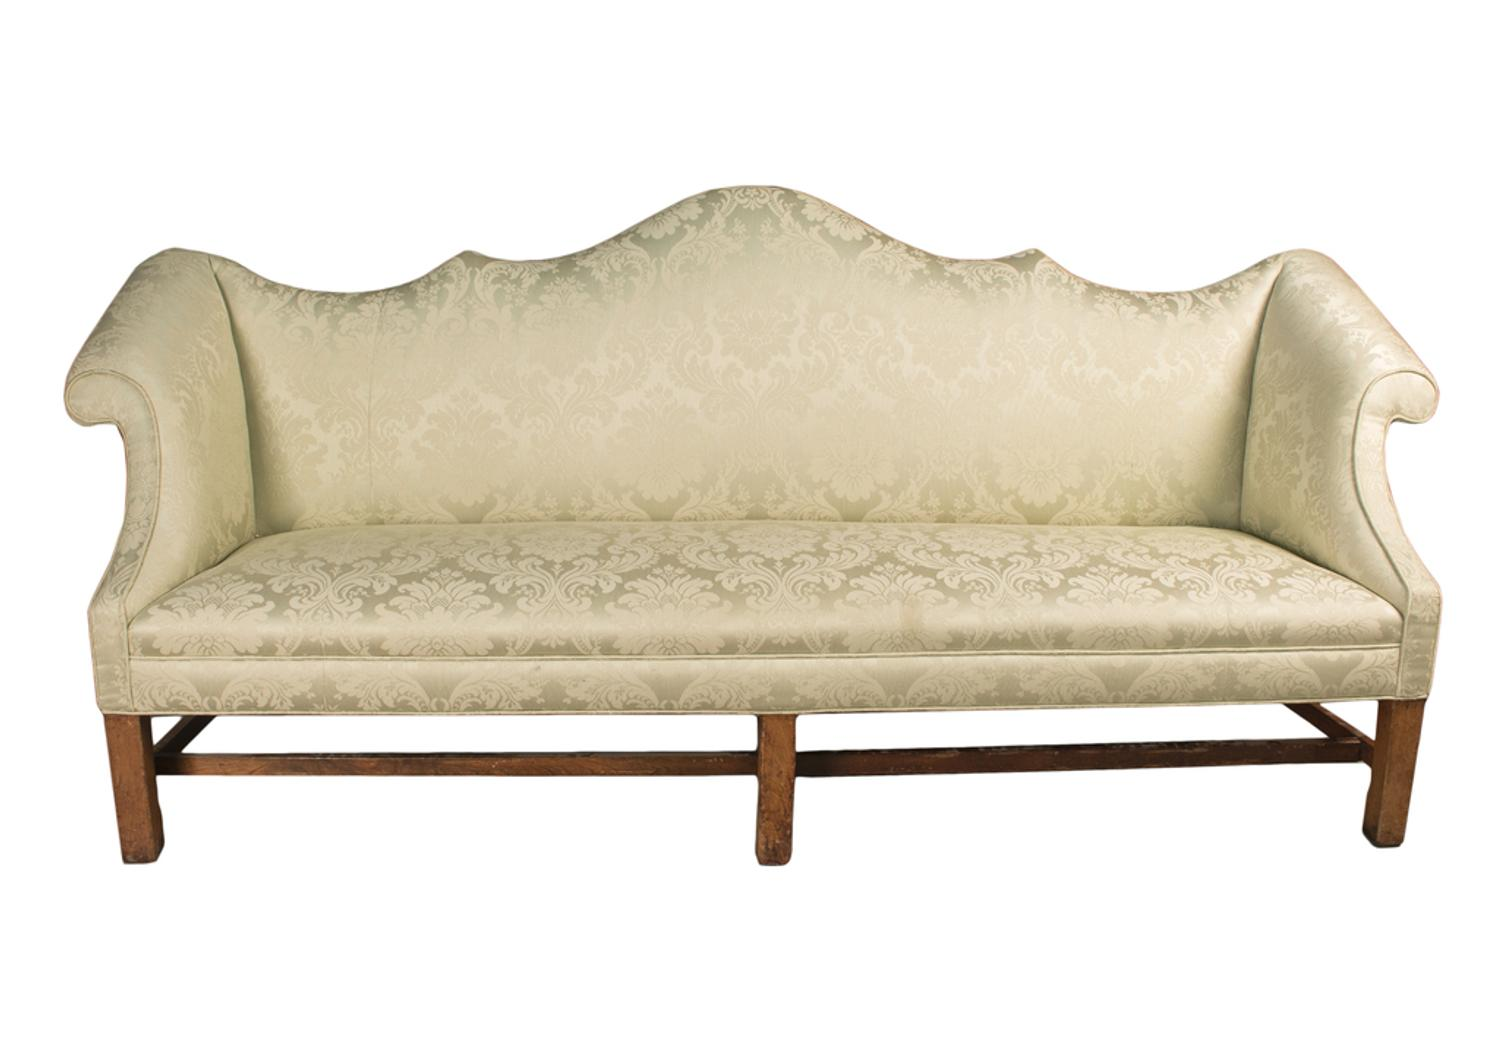 Newly Discovered Chippendale Sofa Circa 1770 Offered In Witherell 39 S American Arts Auction